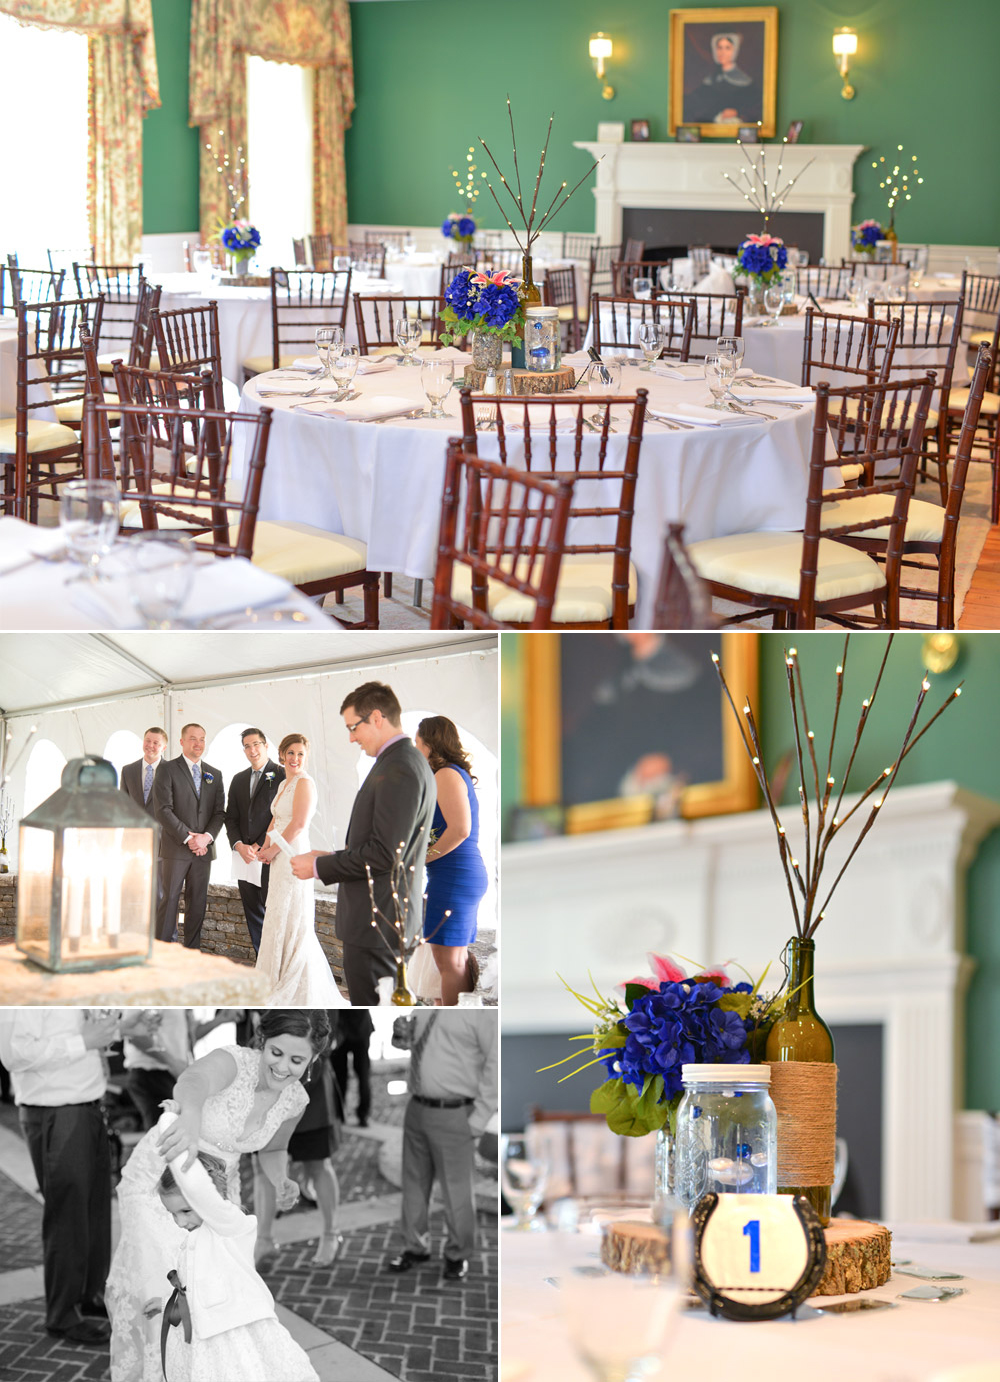 Wedding Ceremony and Reception at Keene Mansion, Lexington, KY